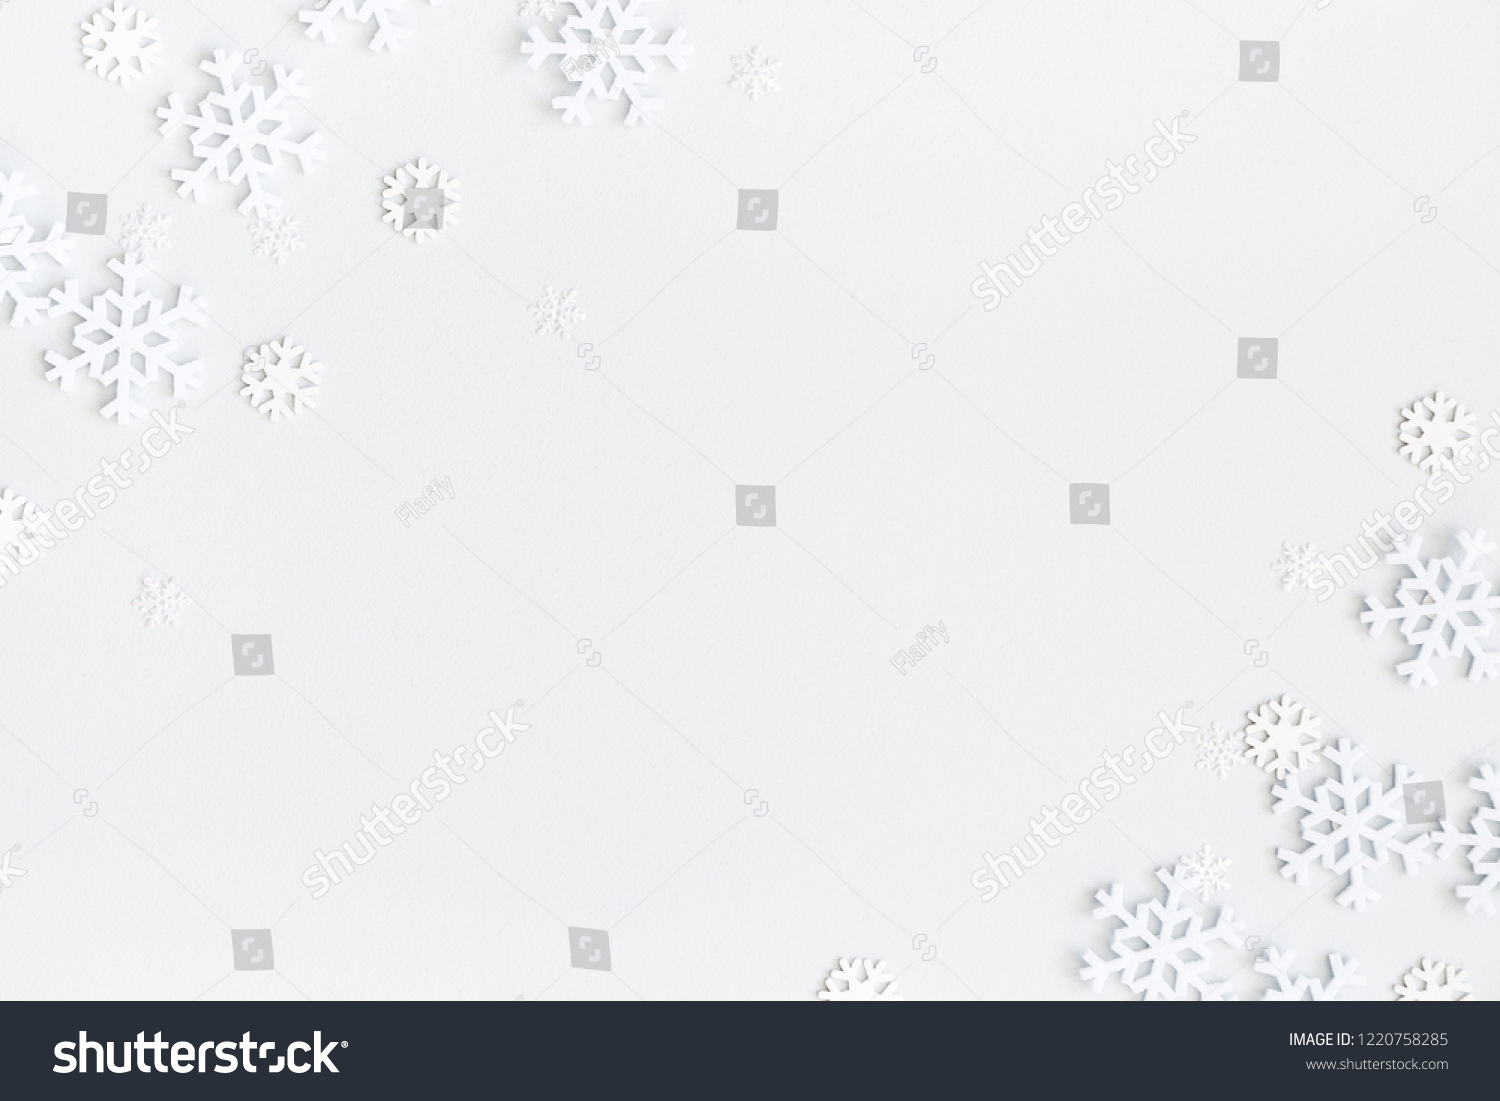 Christmas composition. Christmas frame made of snowflakes on pastel gray background. Winter concept. Flat lay, top view, copy space #1220758285